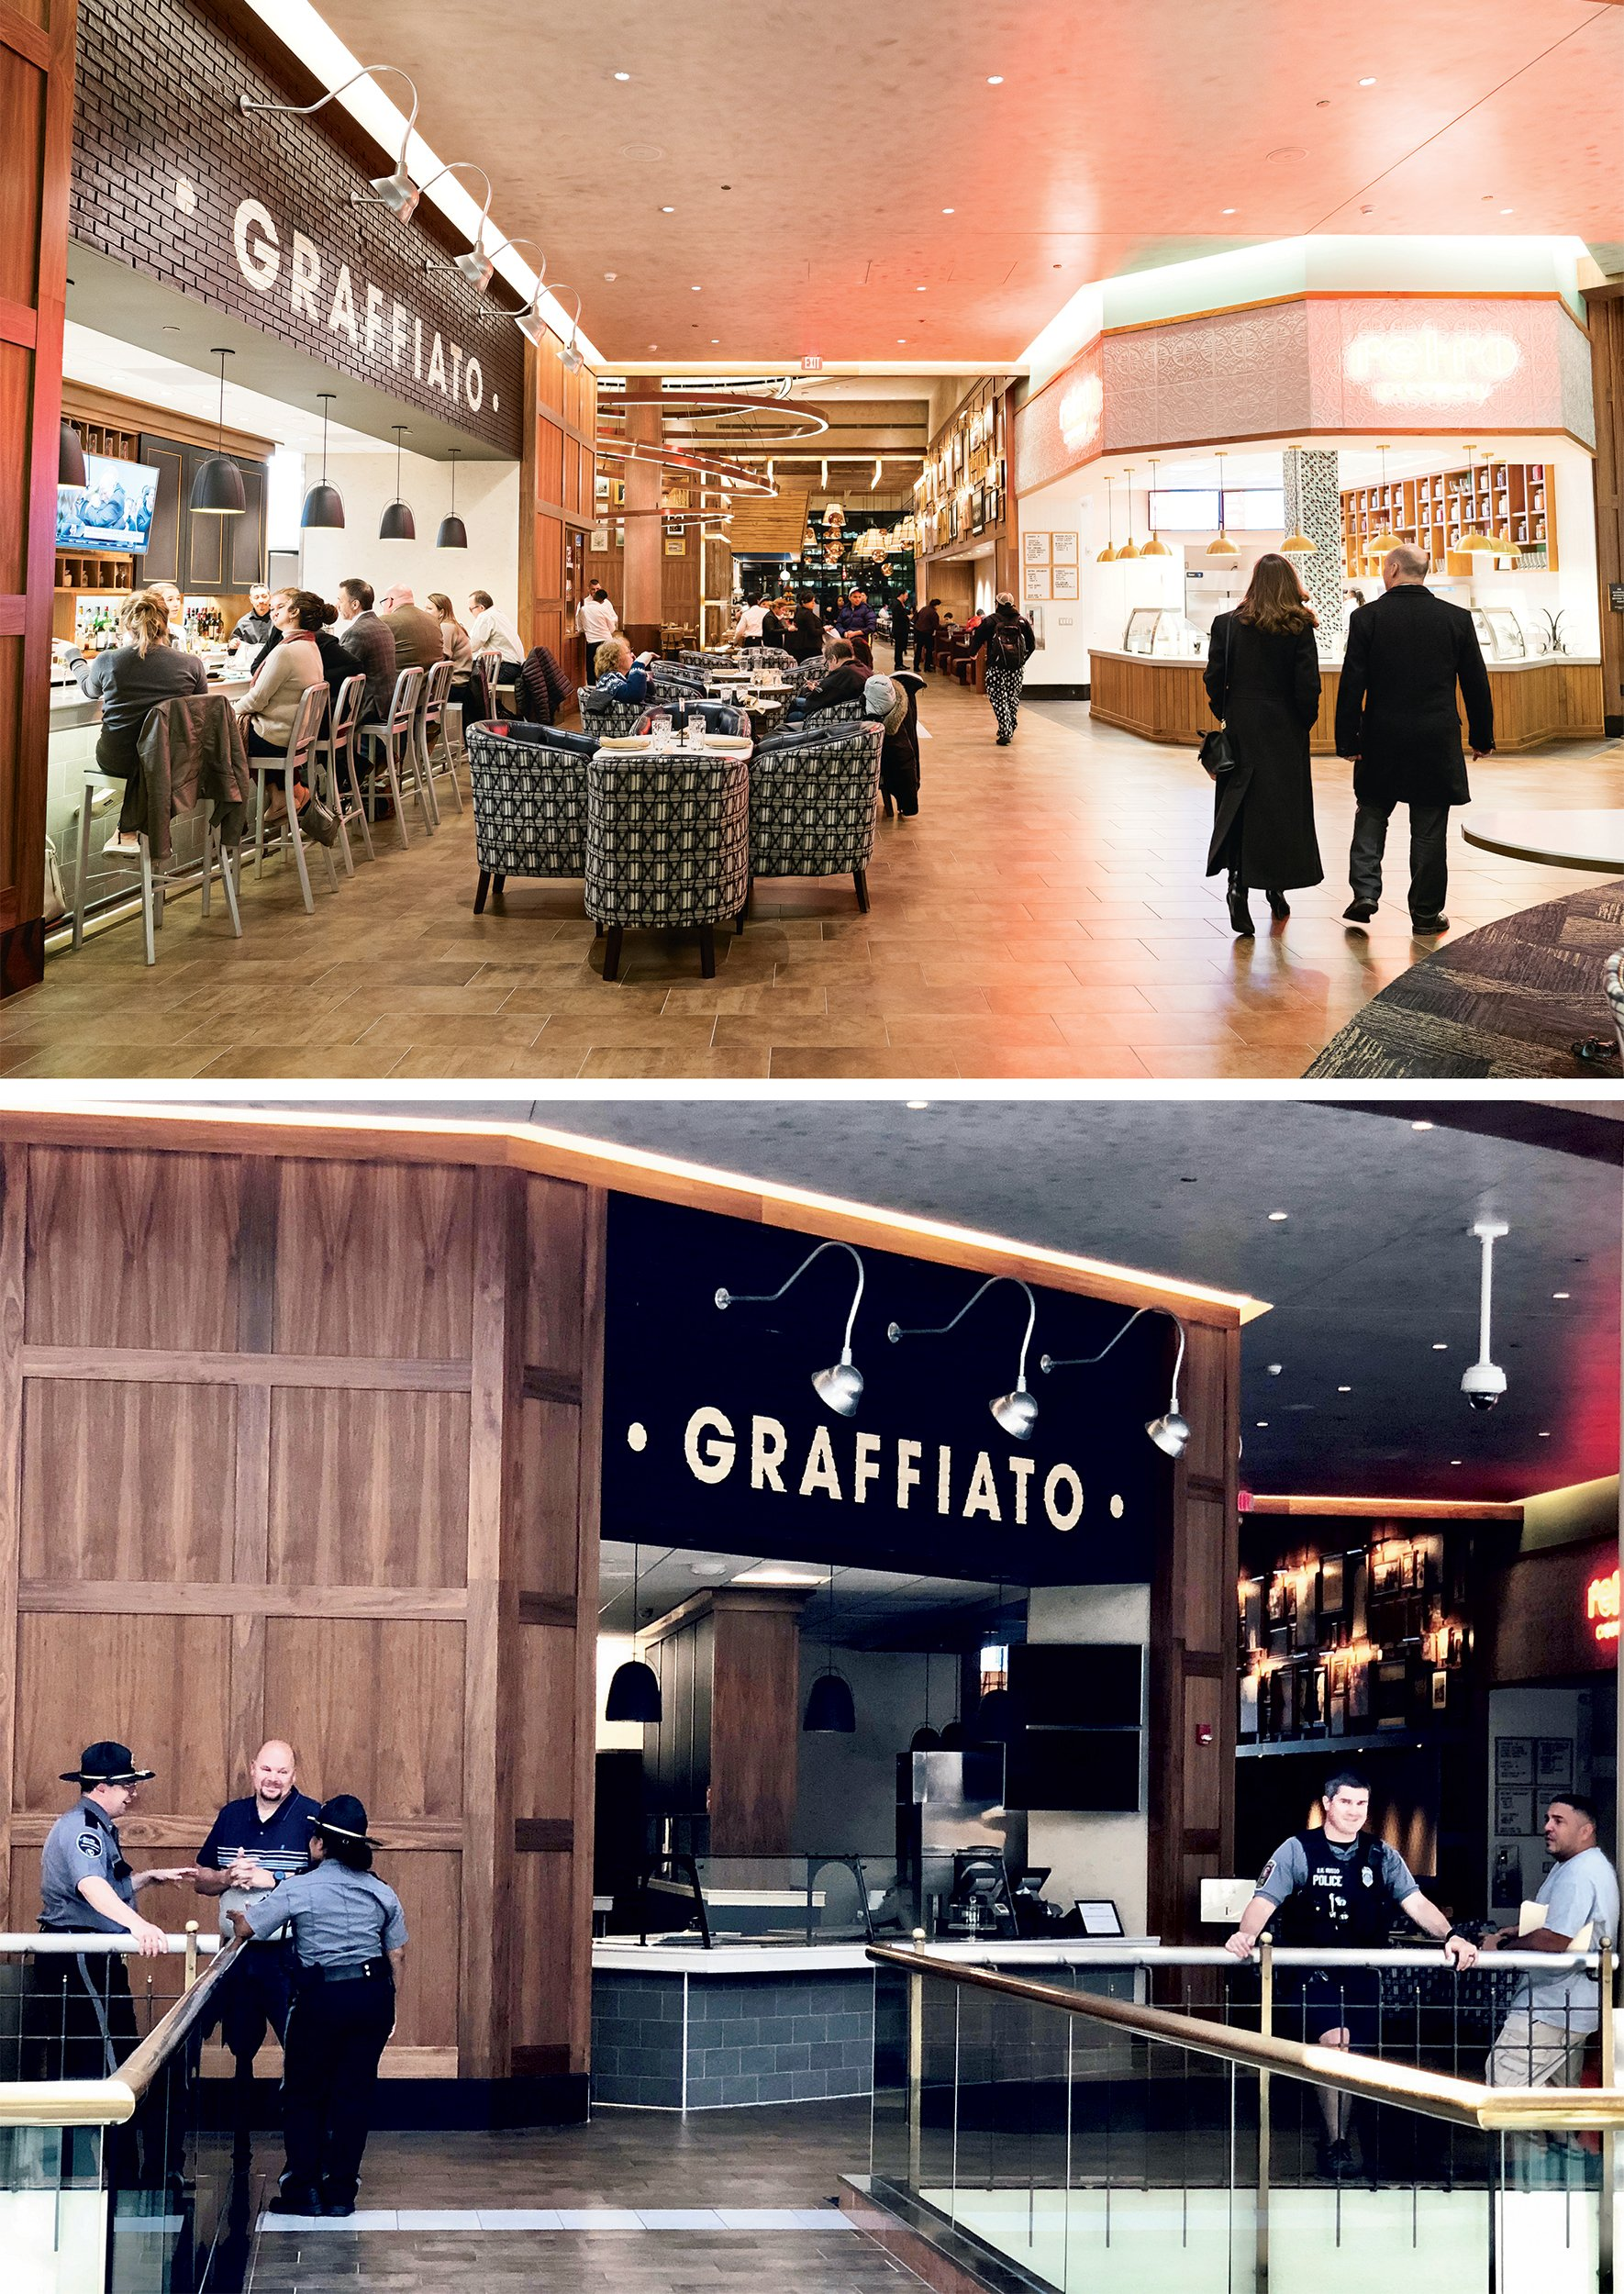 Isabella Eatery, at Tysons Galleria, was an extraordinary concept: a 41,000-square-foot mall food court branded by one personality. But only nine months after opening, it closed and hundreds of people lost their jobs. On its last day (bottom), Mike Isabella didn't show up, but police were on hand to watch it shutter. Top photograph by Scott Suchman, bottom by Evy Mages.